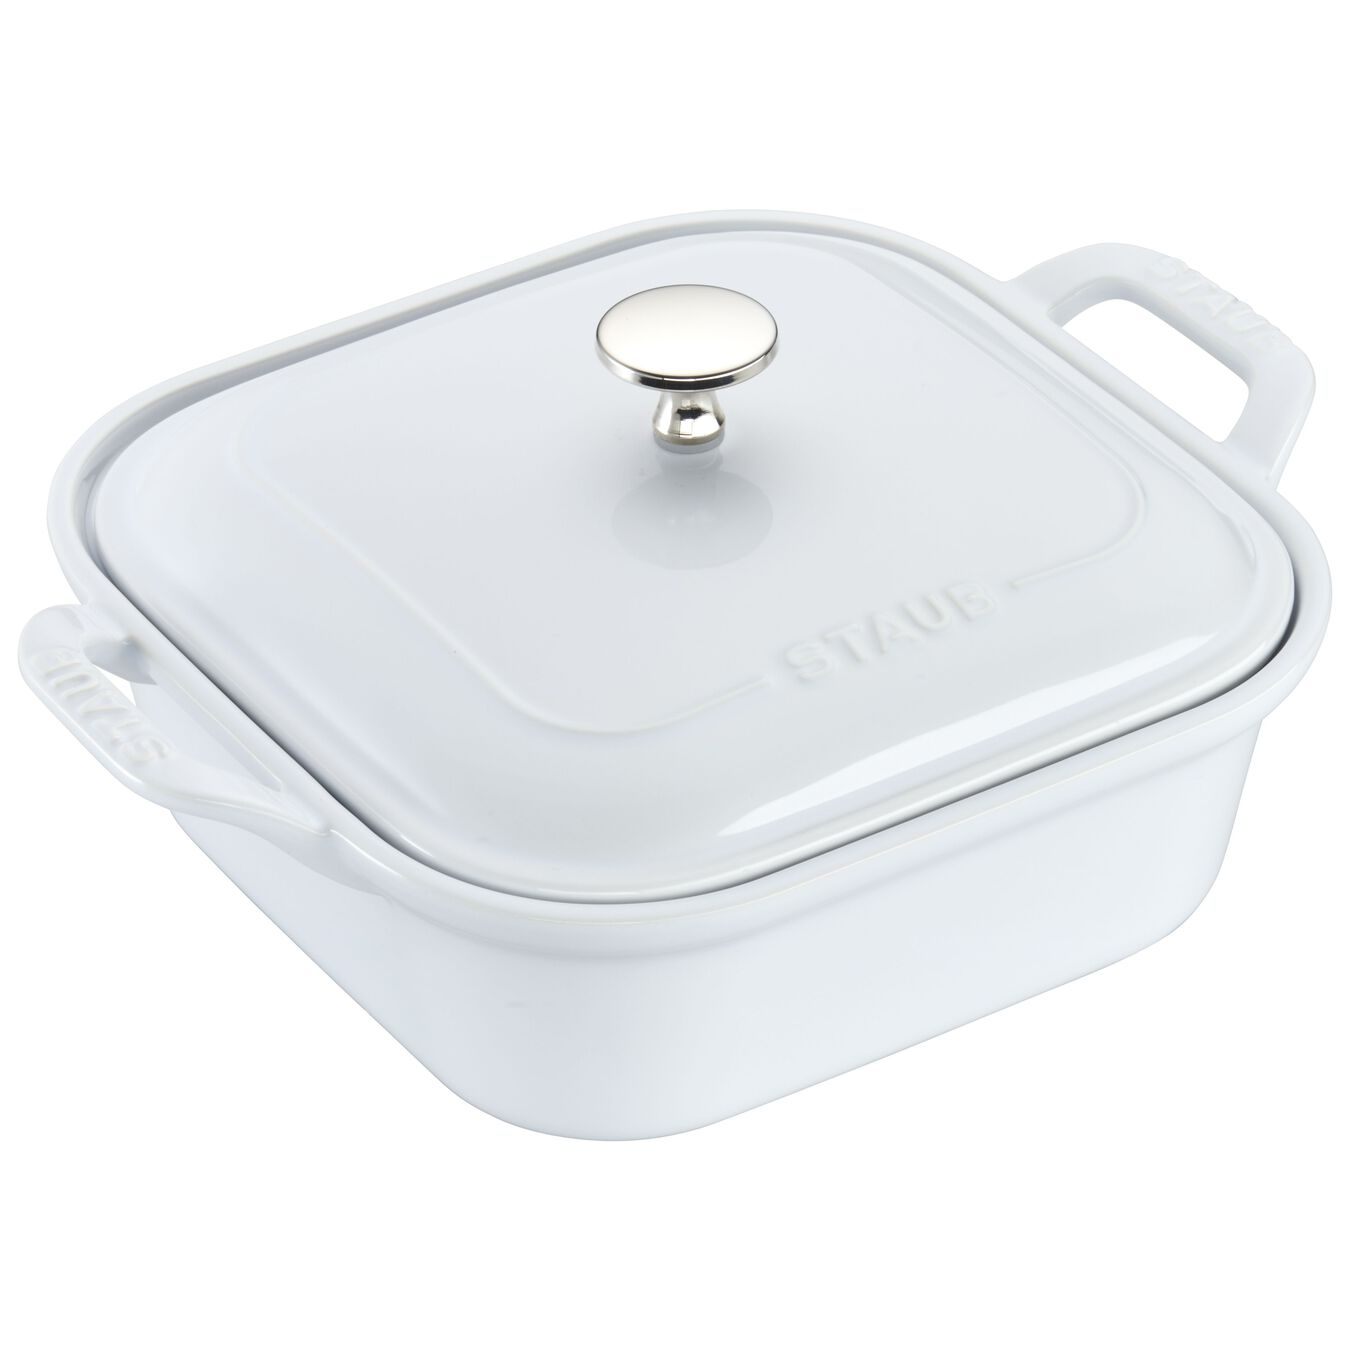 9-inch X 9-inch Square Covered Baking Dish - White,,large 1